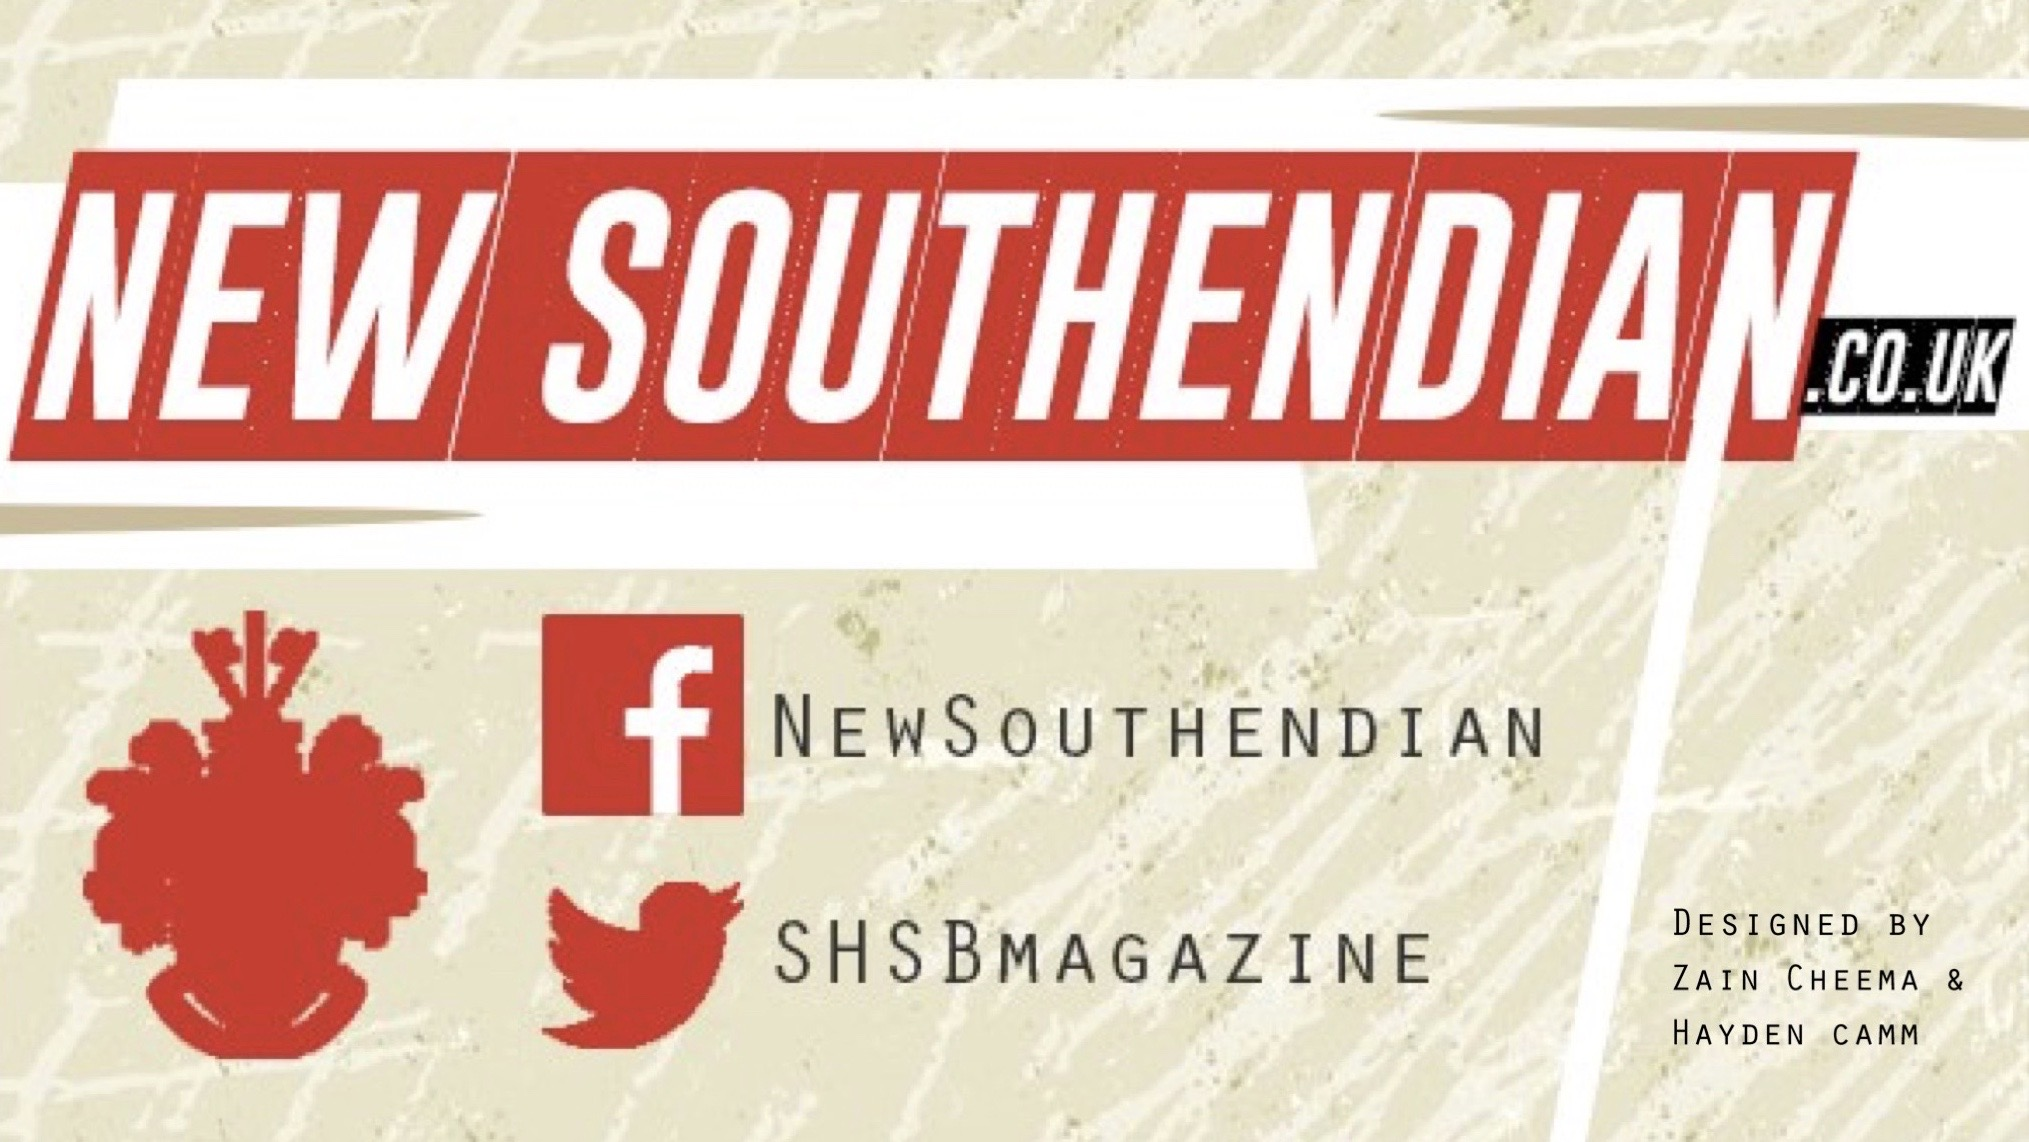 The New Southendian student publication